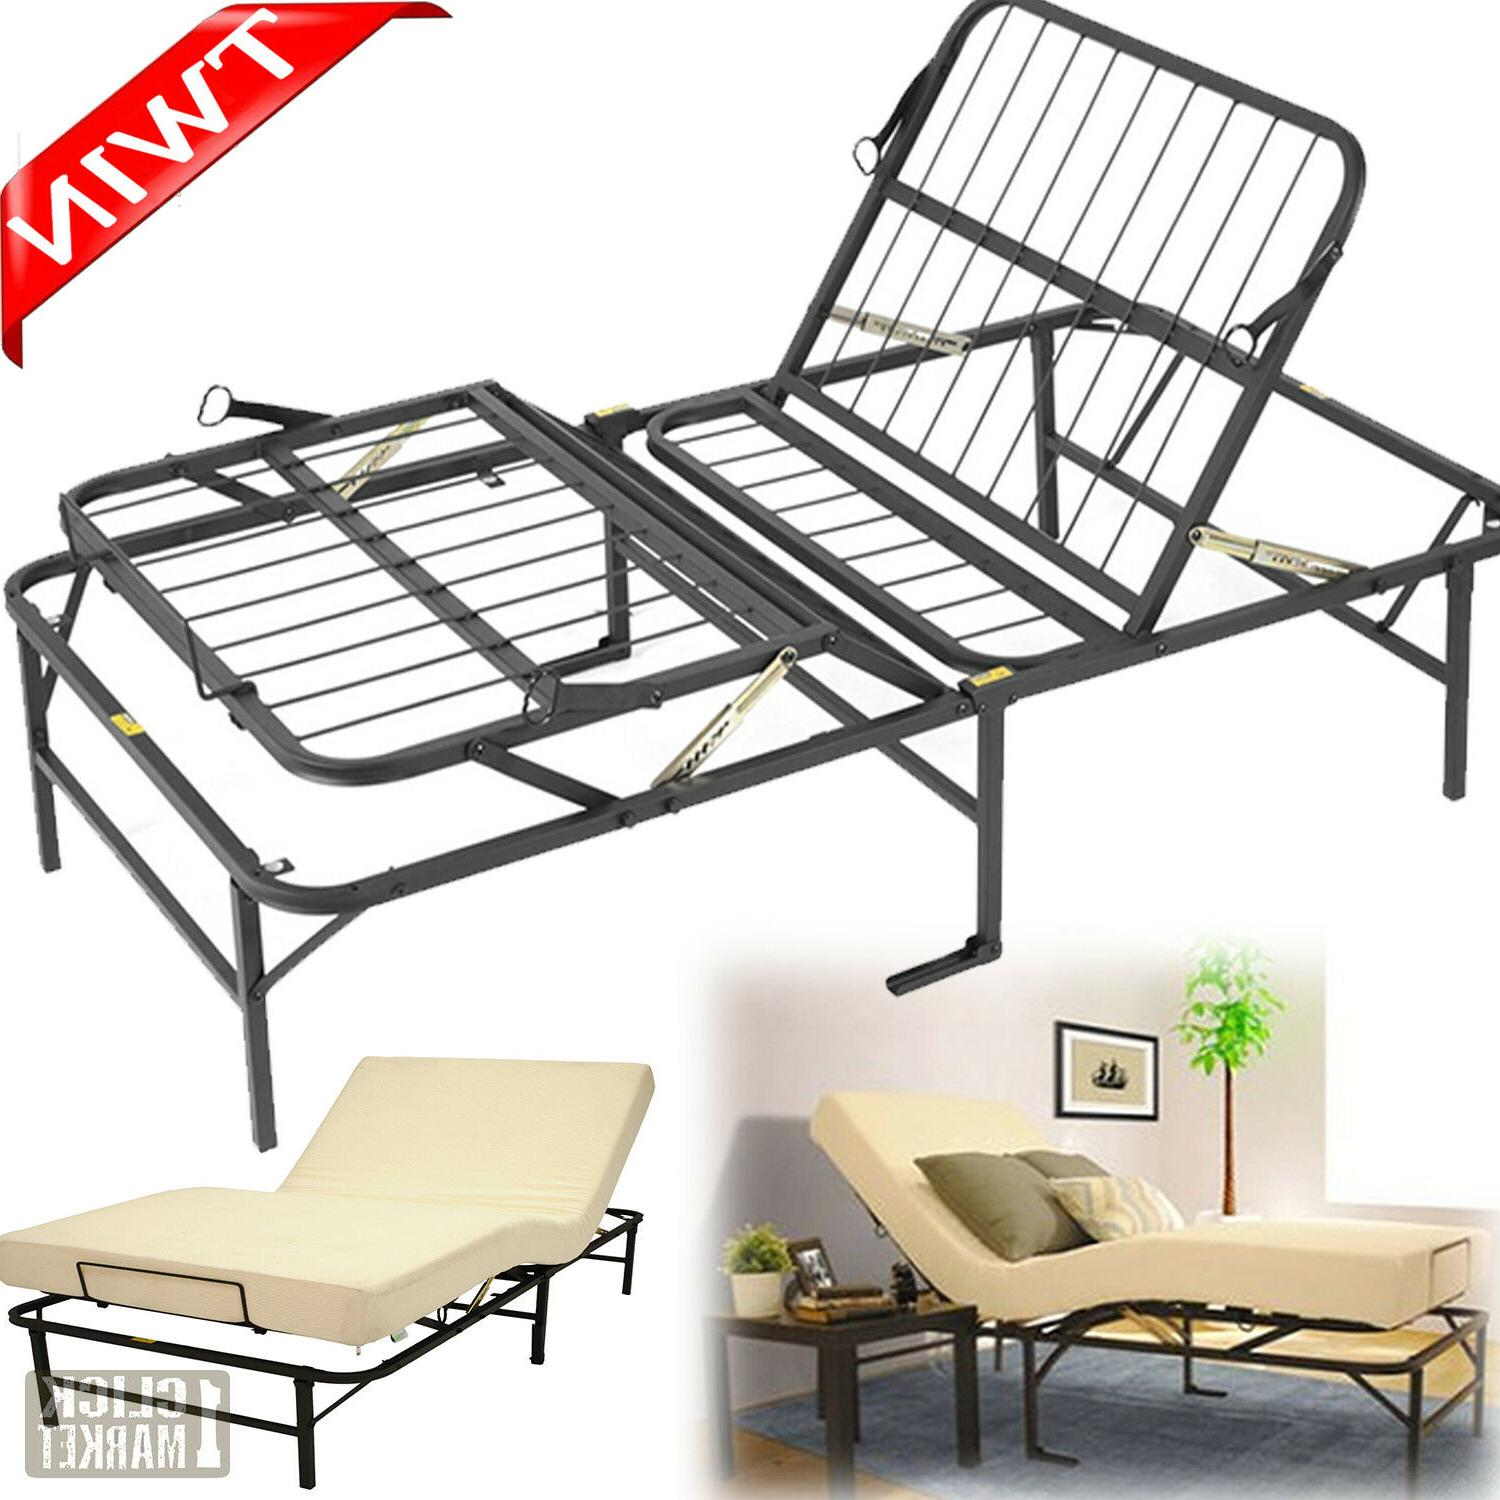 TWIN Size Adjustable Bed Frame Head Foot Lift Furniture Meta